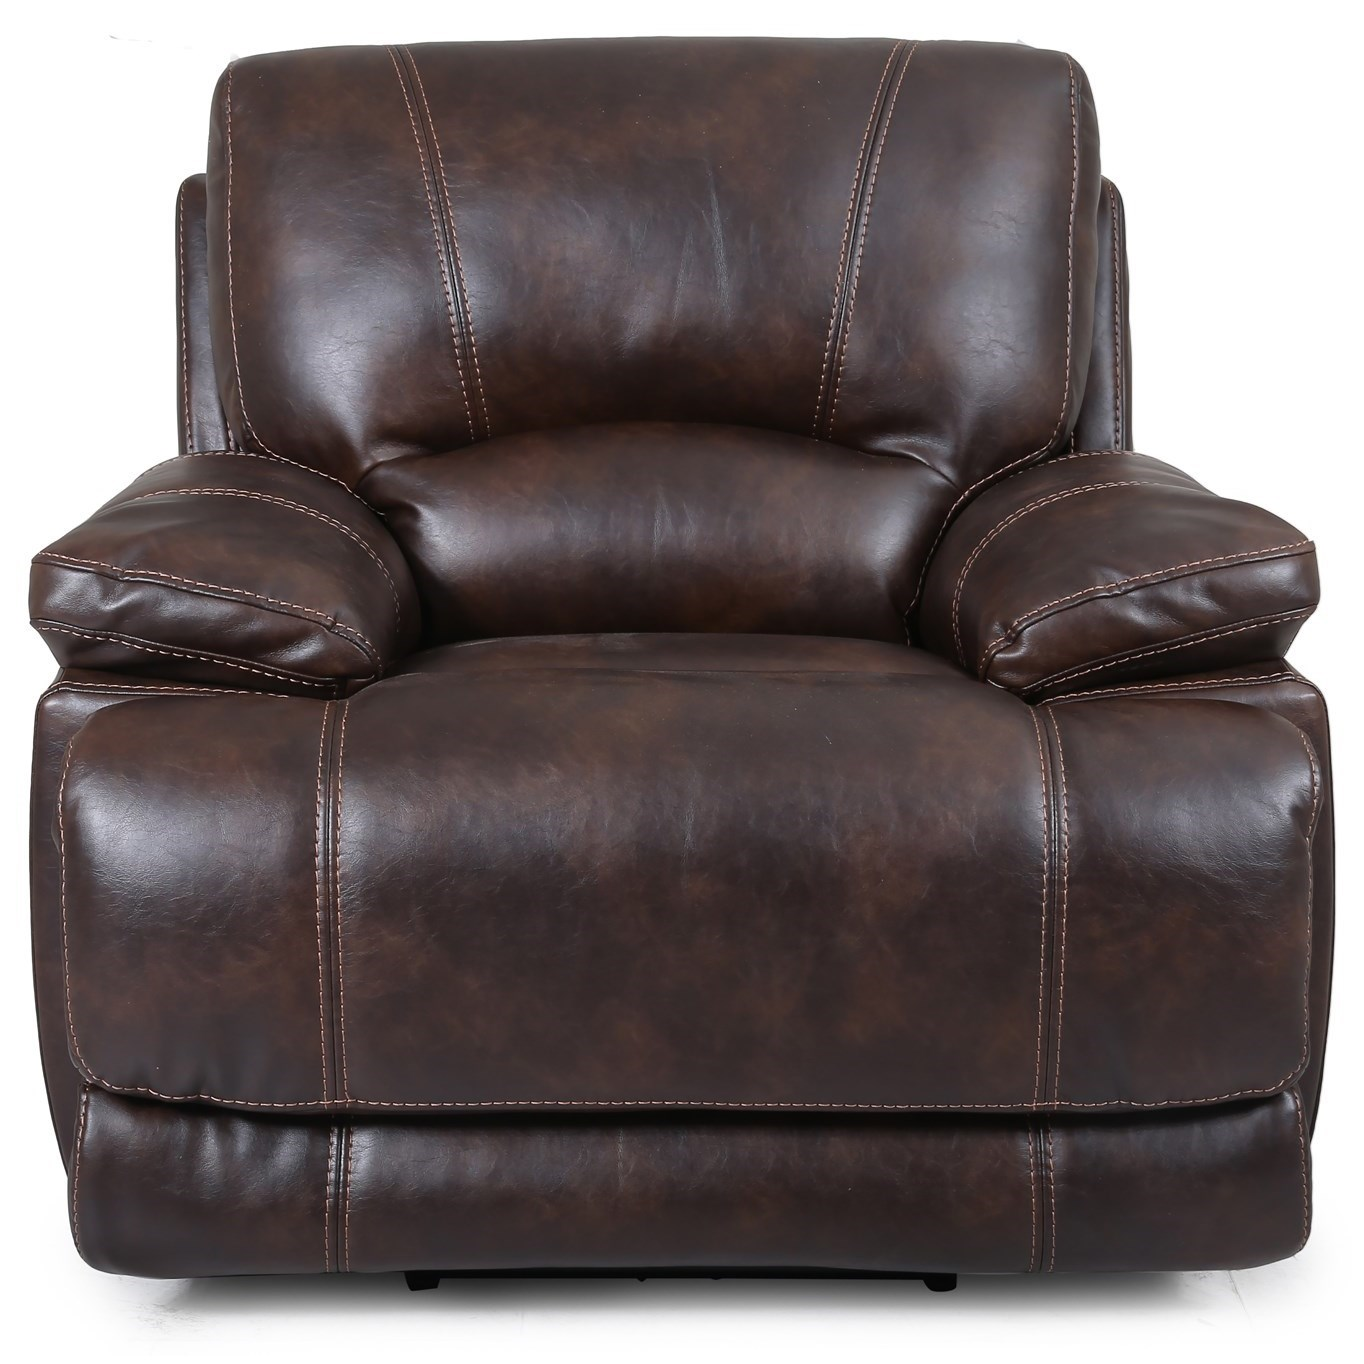 5185M Power Recliner by Cheers at Westrich Furniture & Appliances